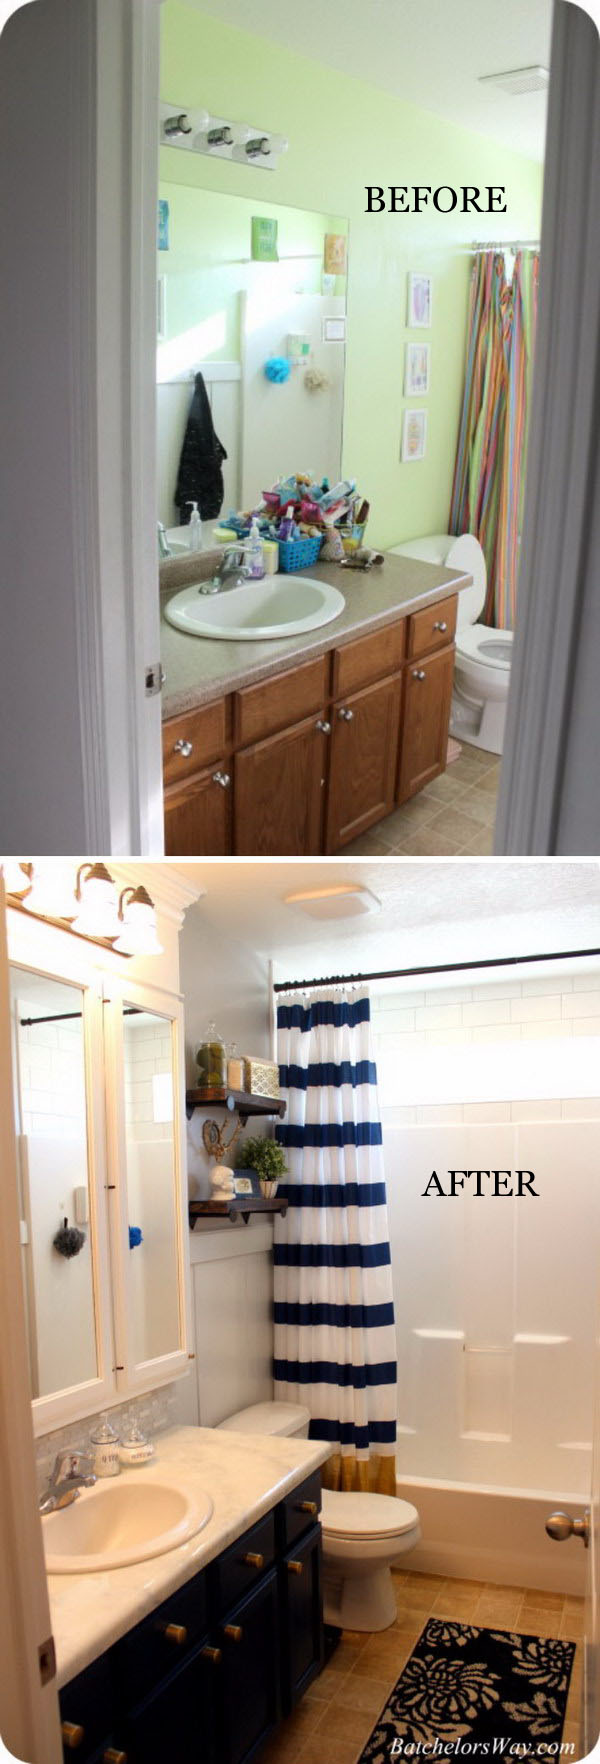 33 inspirational small bathroom remodel before and after diy design decor Small modern bathroom on a budget